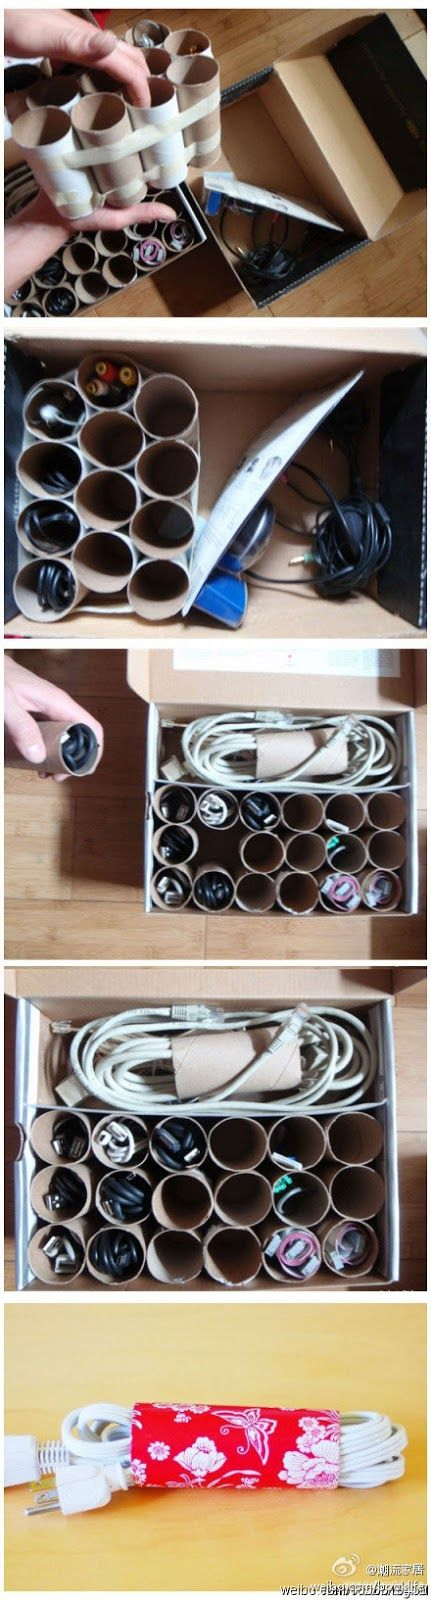 DIY: Cable/Cord holder ~ AWESOME idea! Use a shoe box to store up your toilet paper rolls (decorate them if you want to 'identify' the cable/cord). You can use wasabi tape or other self-adhesive to 'identify' the cable/cord in the 'inside' of the toilet paper. This is definitely doable and I need to organzie my cables and cords too. Great idea!